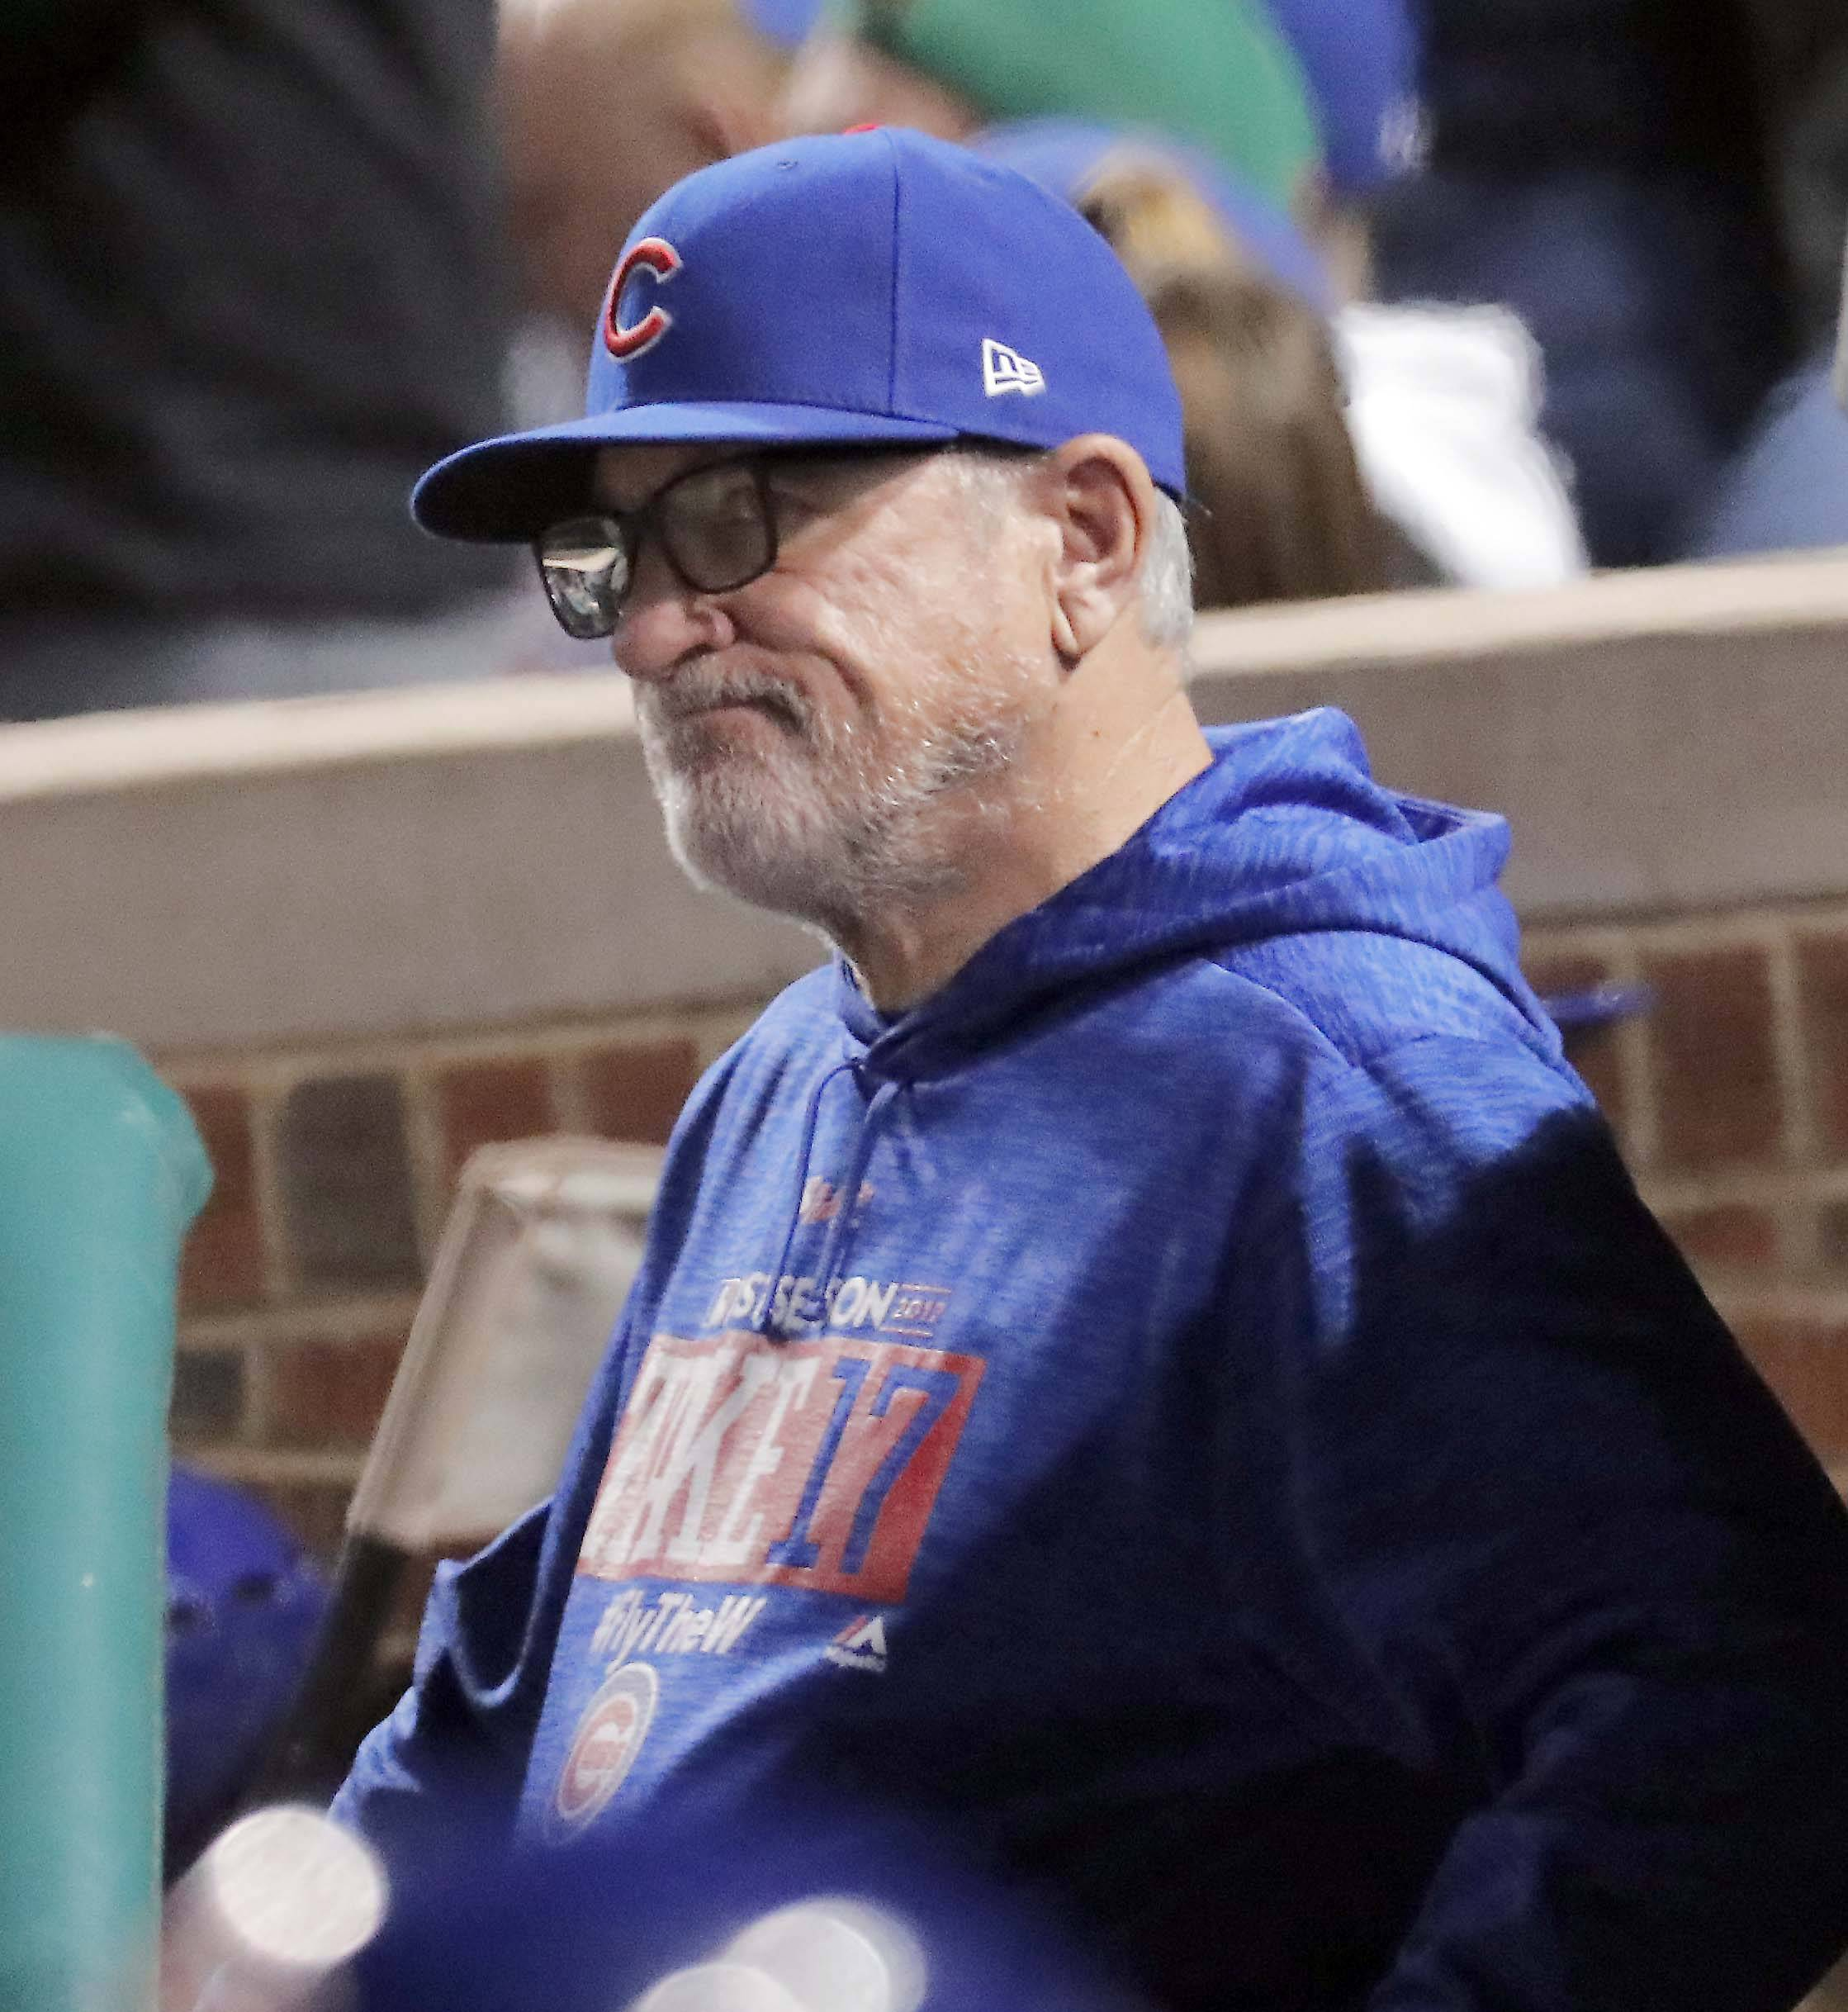 Chicago Cubs manager Joe Maddon says he's satisfied with the team on the field to start next season, but more pitching help is needed.